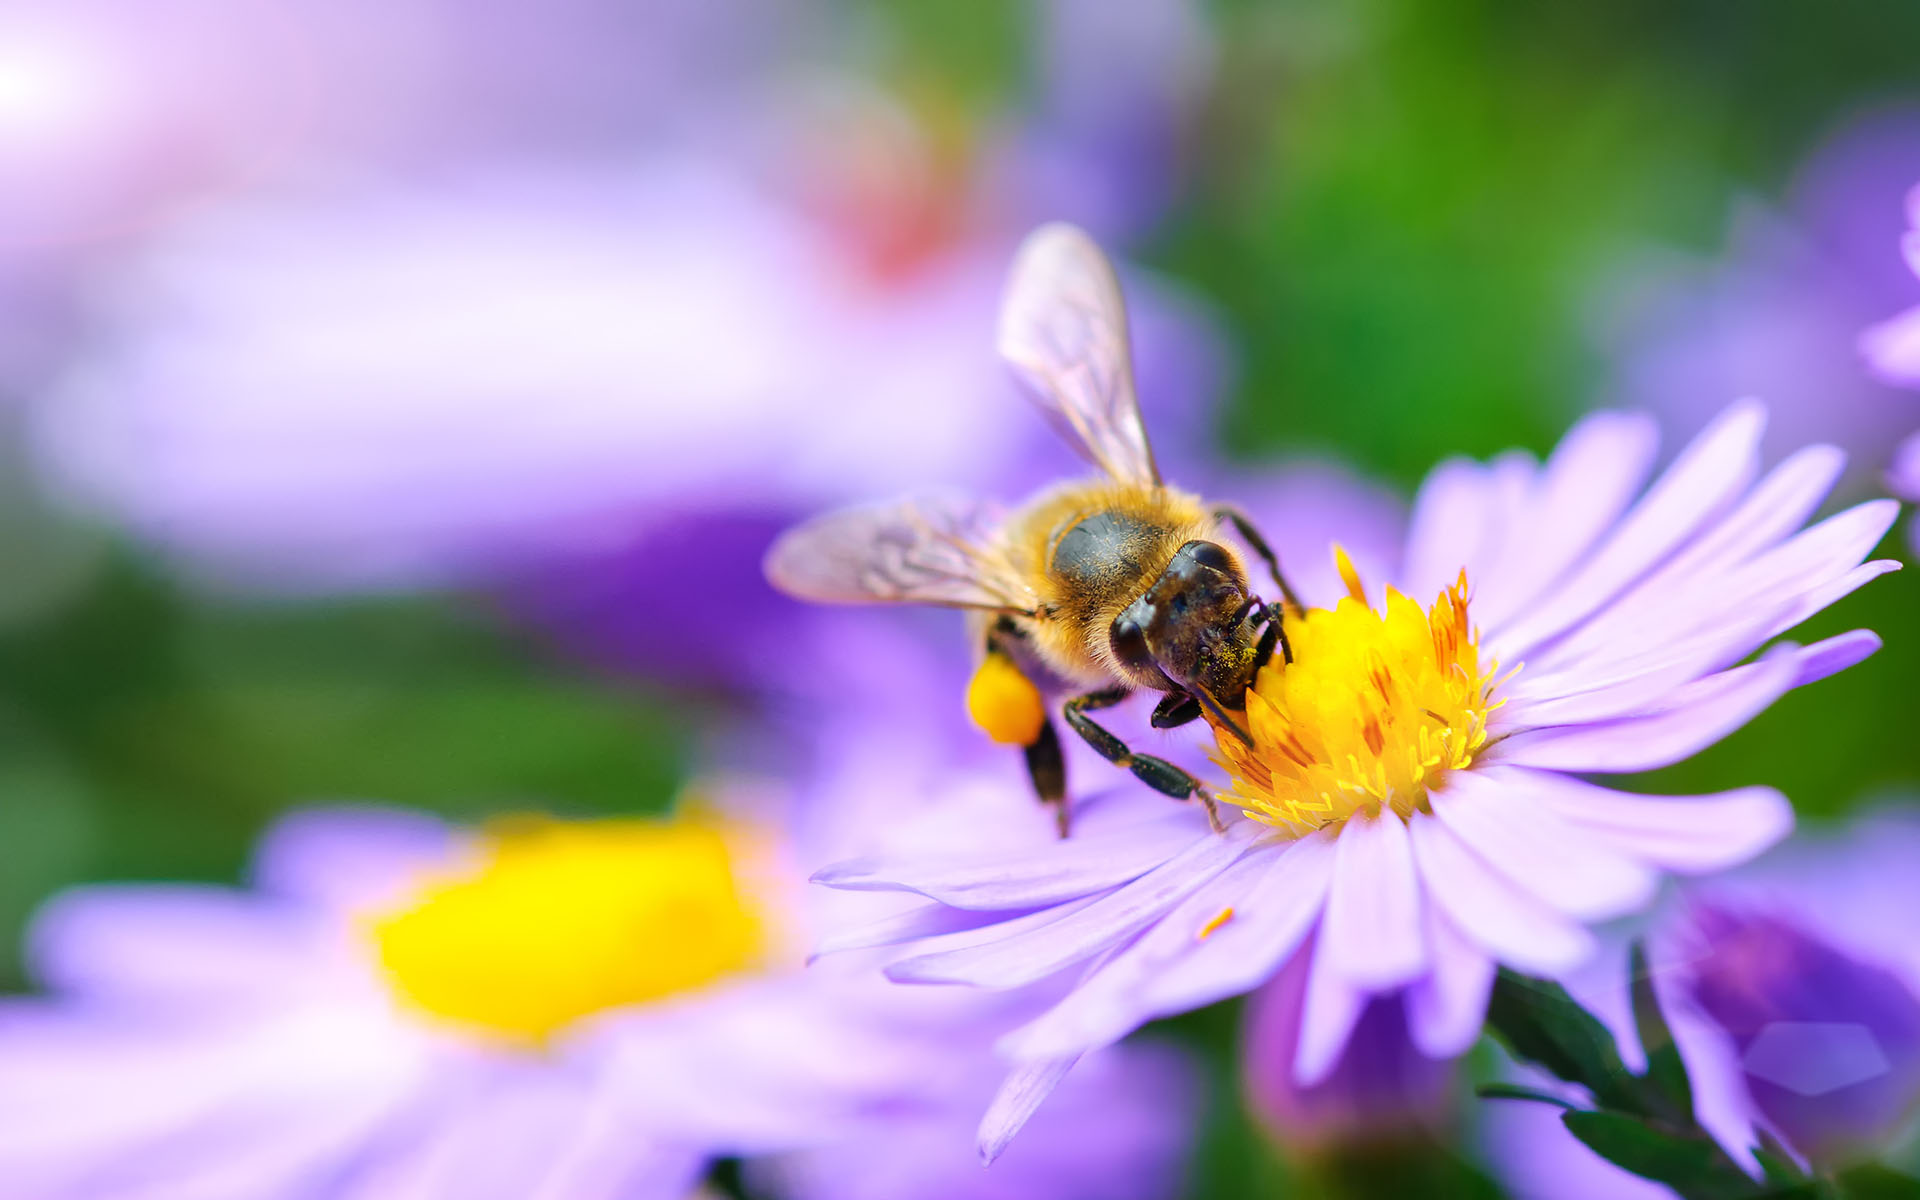 The Mindful Life of Bees - bee gathers the flower. Under rays of sun